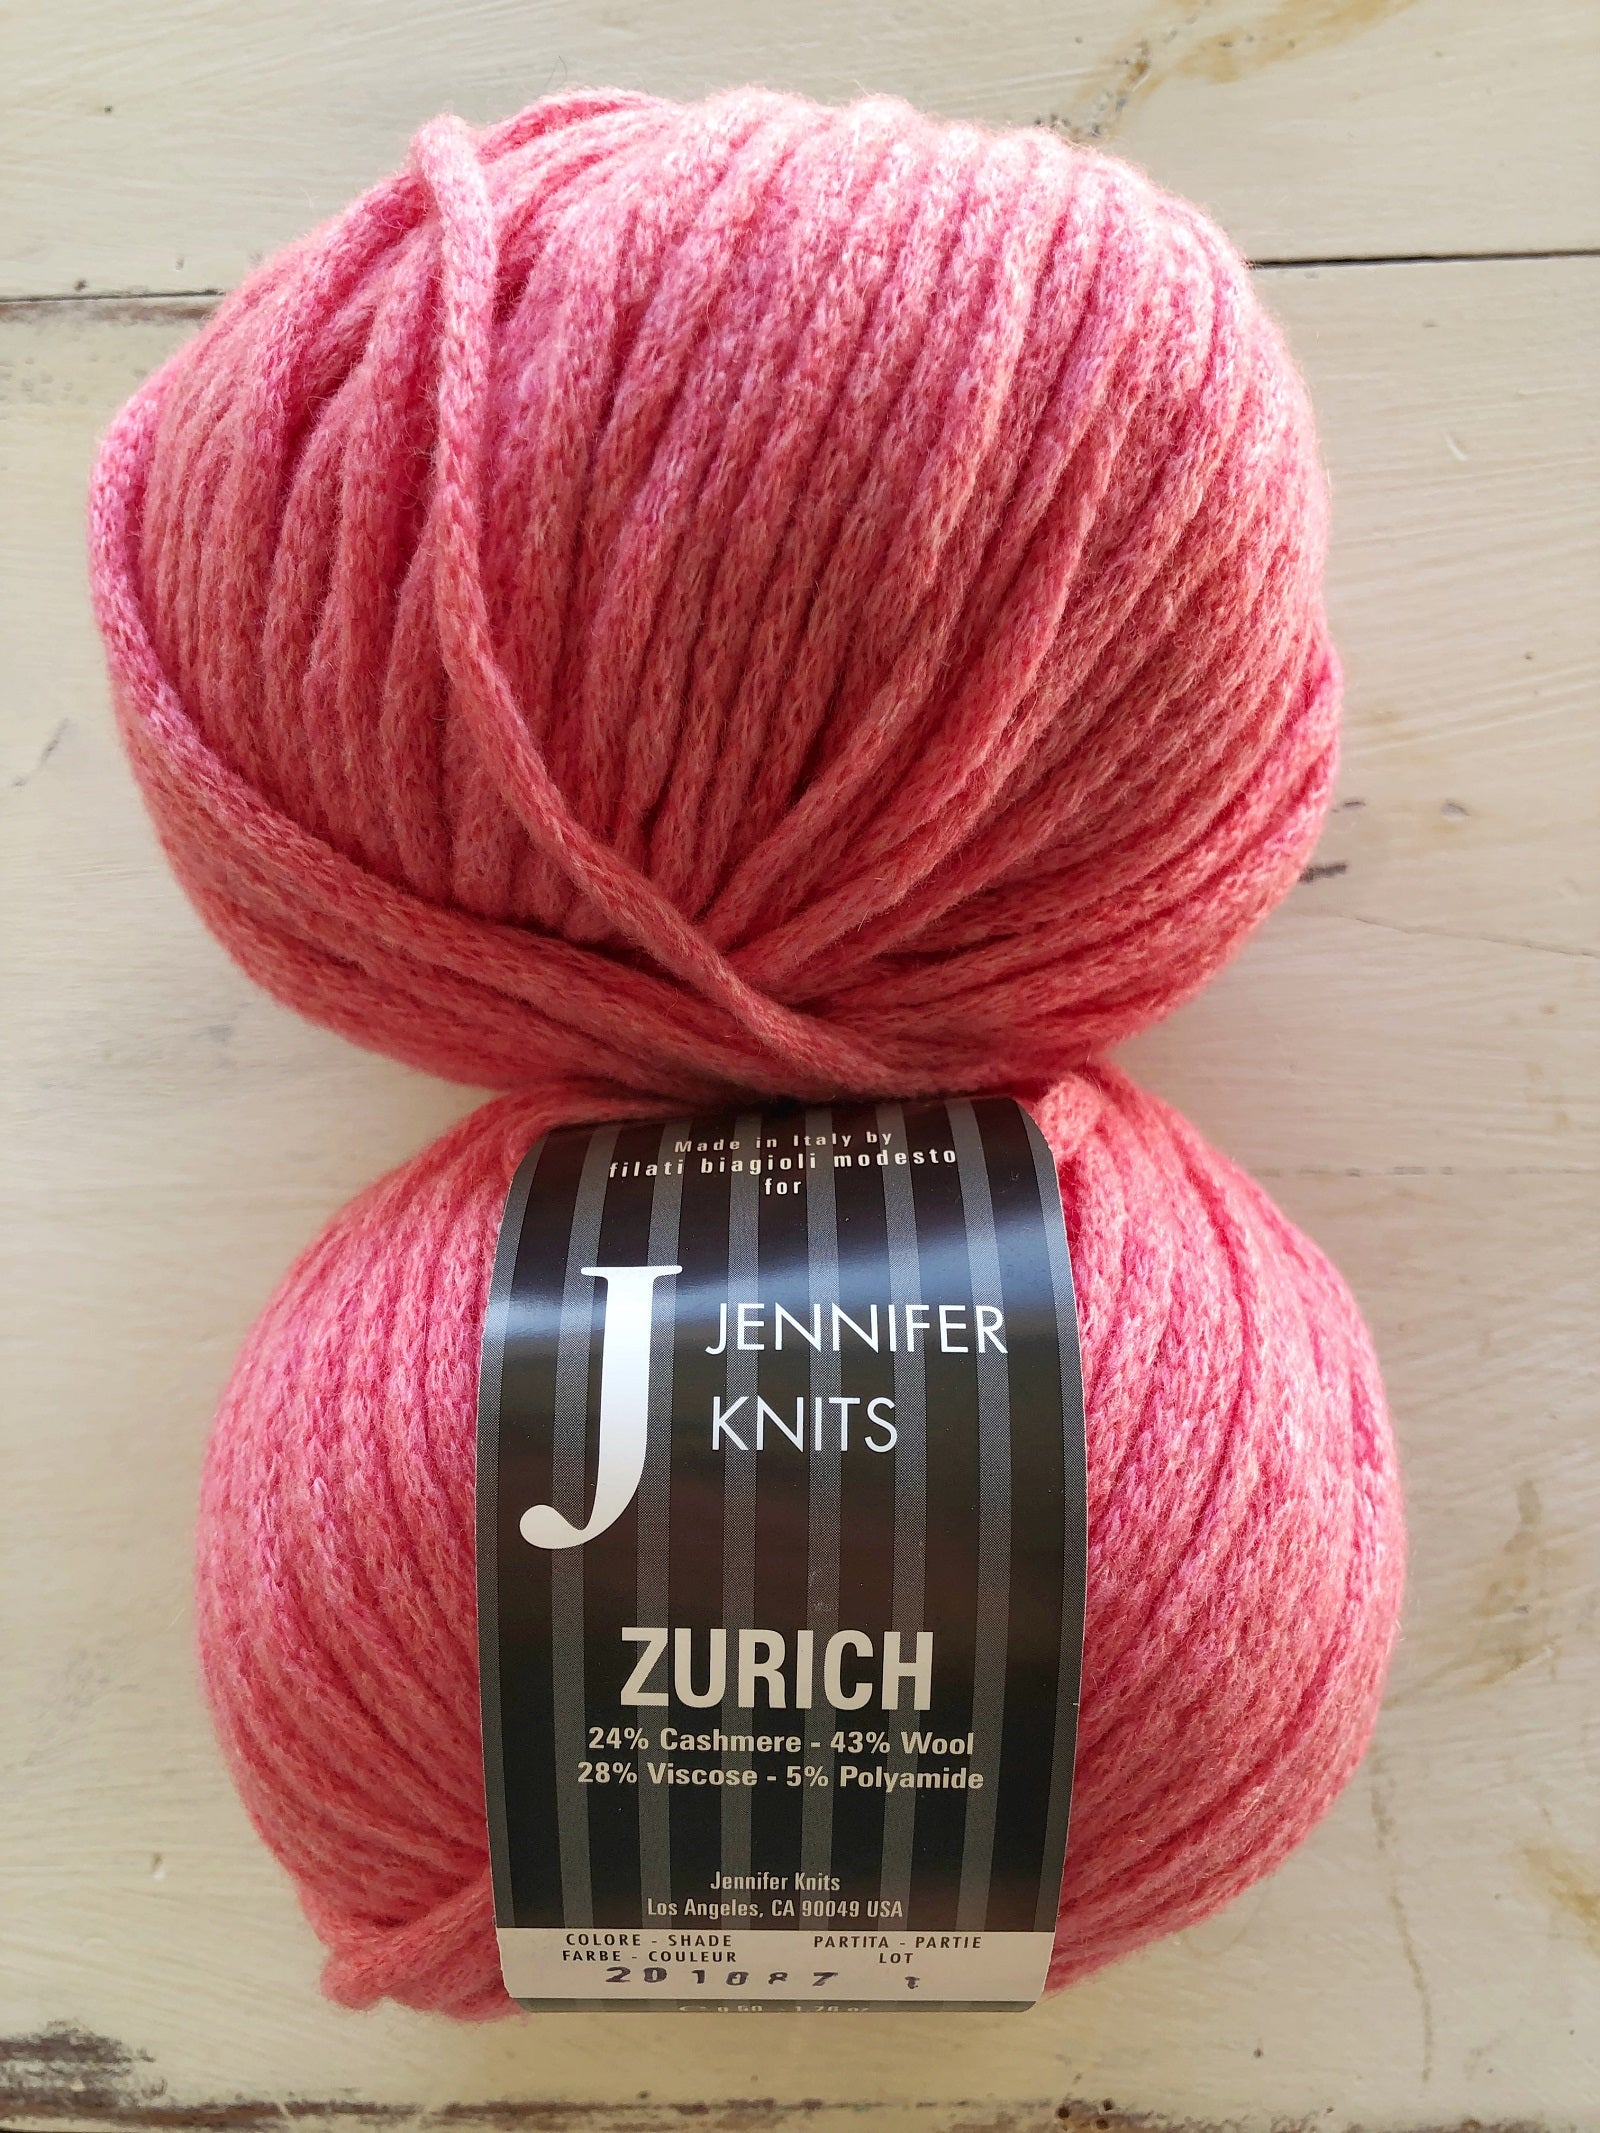 String Yarns and Jennifer Knits Zurich